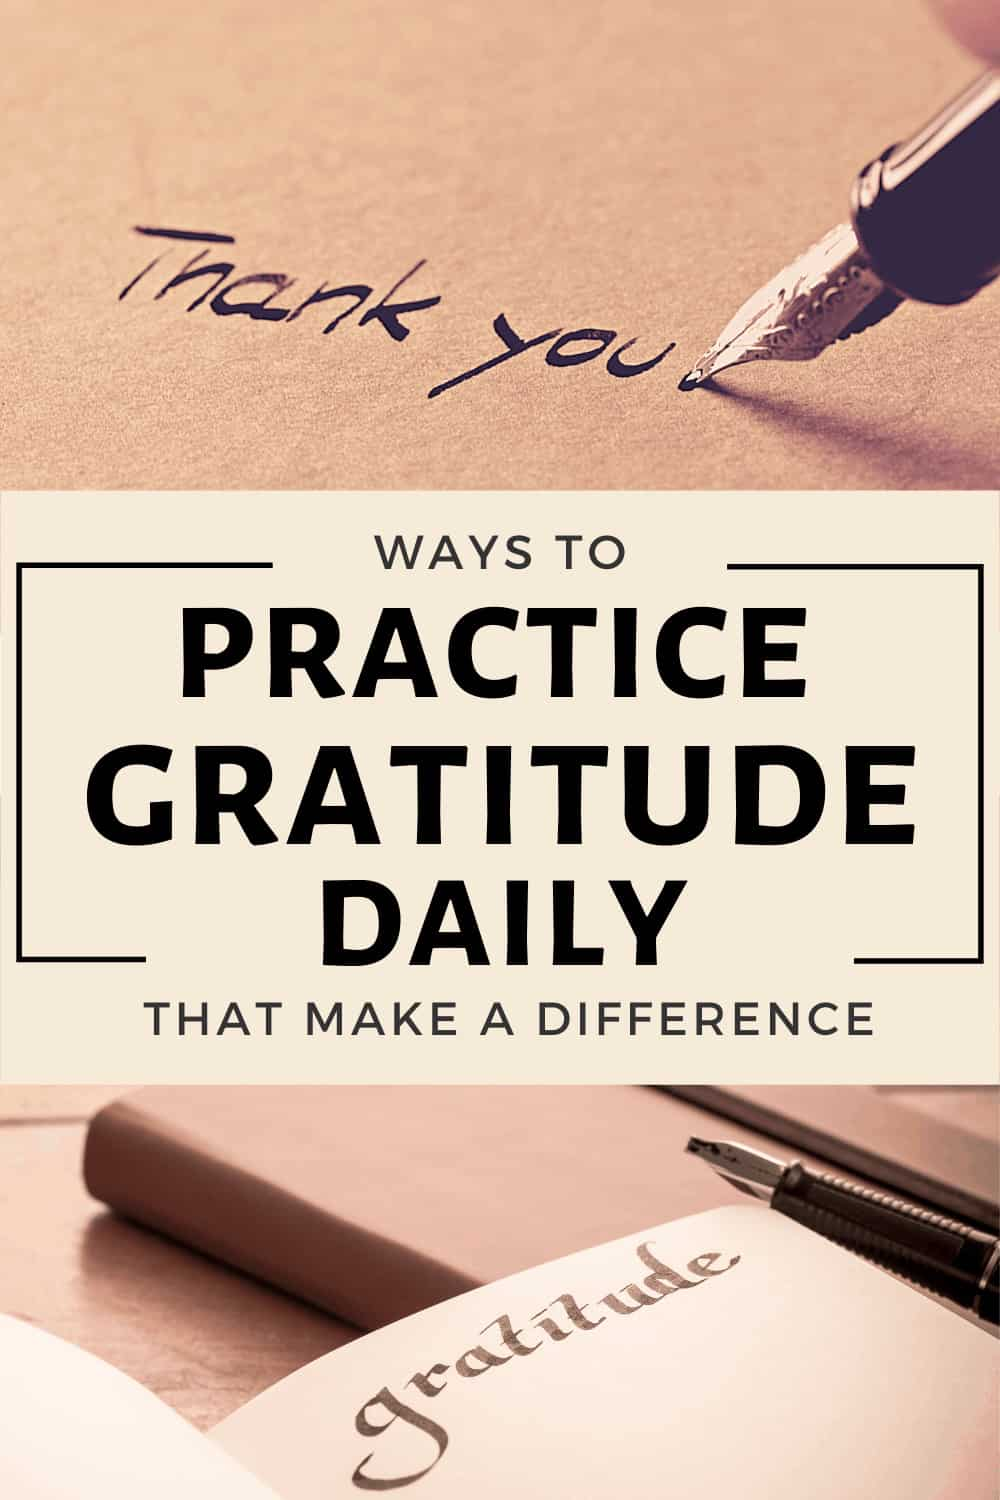 Ways To Practice Gratitude and Make a Difference